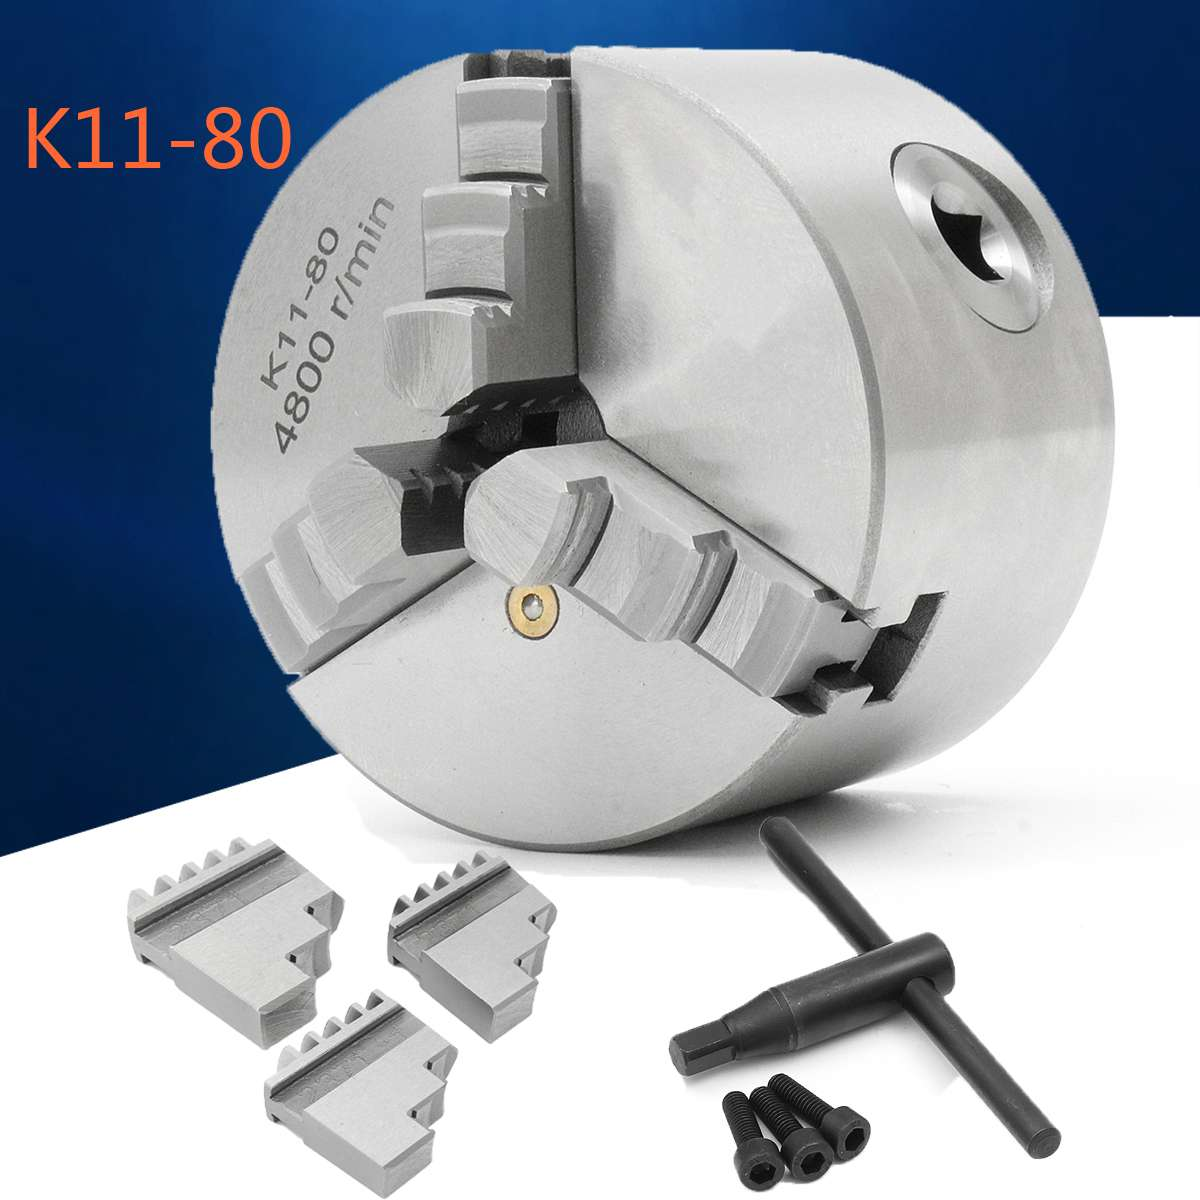 WOLIKE K11-80 4800rpm Chuck 3 Jaw Self Centering Lathe Chuck 80mm Metal Tools Accessories for Drilling Milling MachineWOLIKE K11-80 4800rpm Chuck 3 Jaw Self Centering Lathe Chuck 80mm Metal Tools Accessories for Drilling Milling Machine